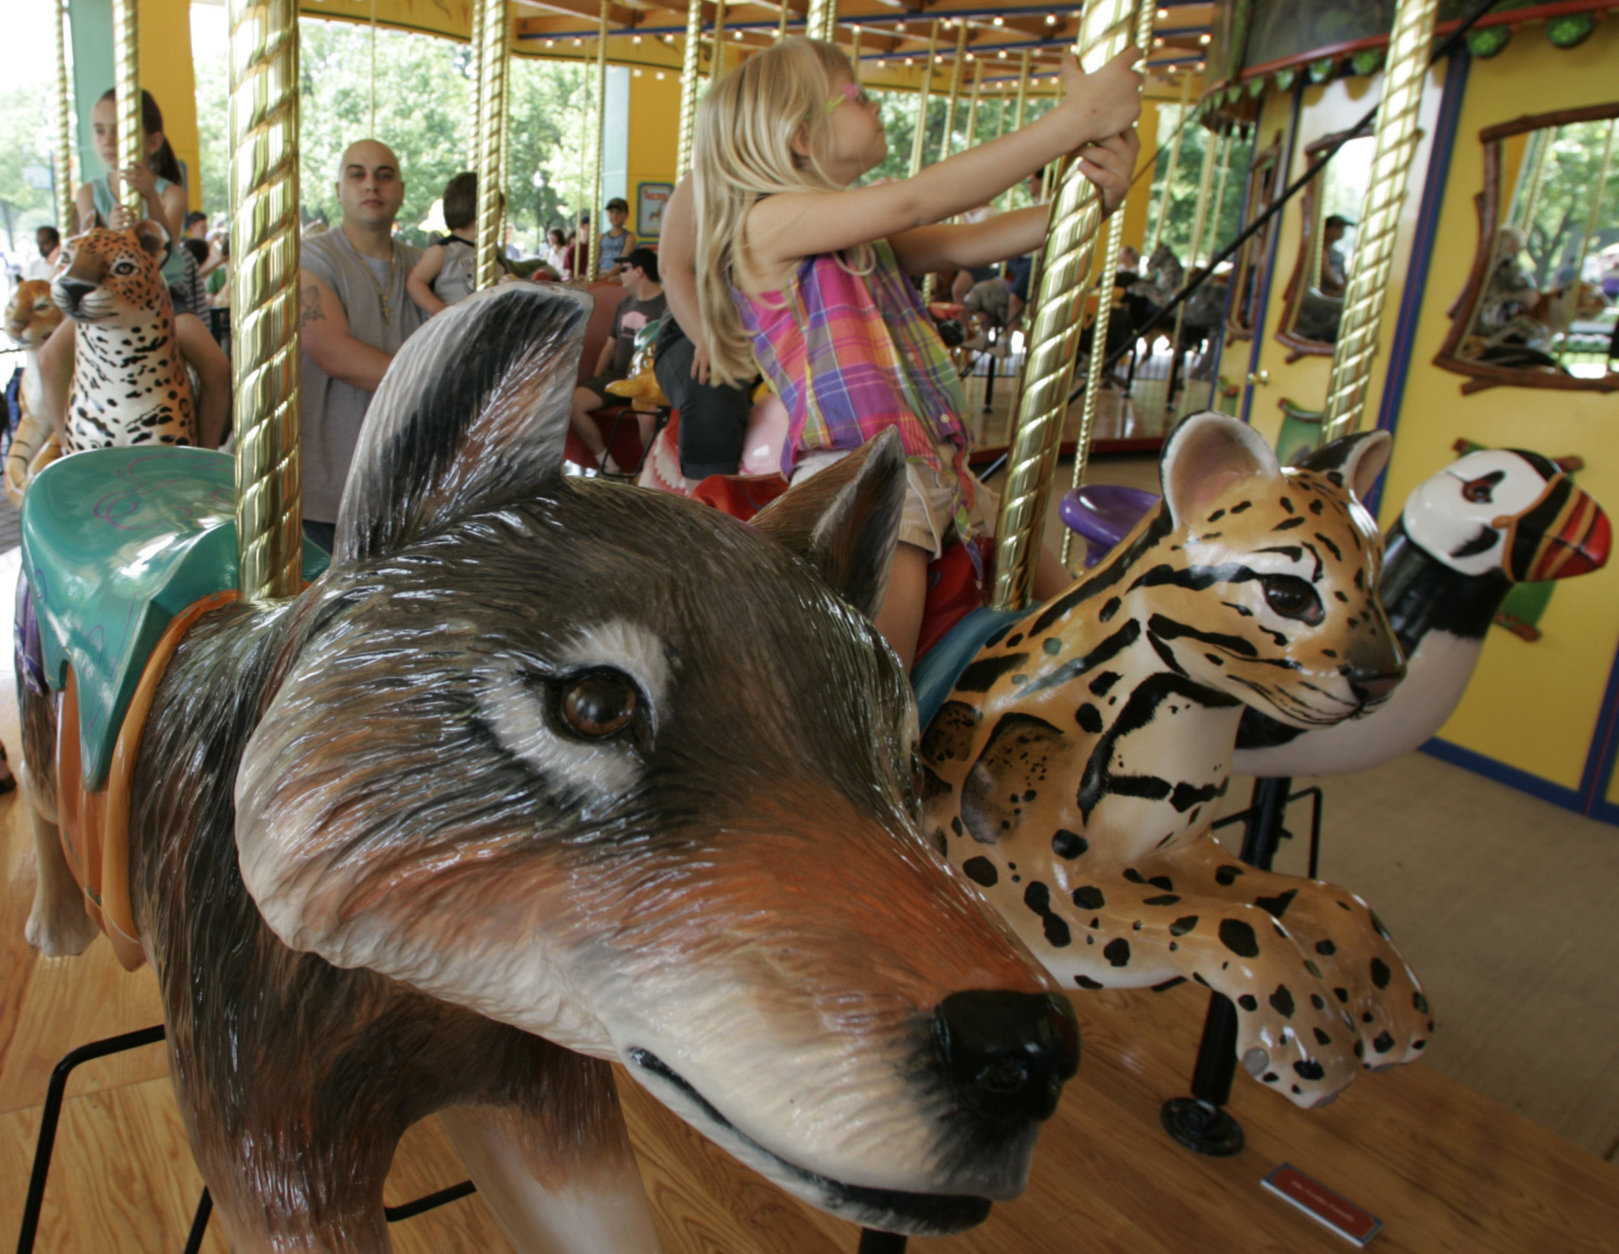 Paige McCoy rides a leopard cub on Brookfield Zoo's new carousel Saturday May, 27, 2006 in Brookfield, Ill. The new attraction is the largest non-restored hand carved wooden carousel in the country and features 72 animals representing a variety of mammals, birds, insects, reptiles and amphibians. (AP Photo/M. Spencer Green)